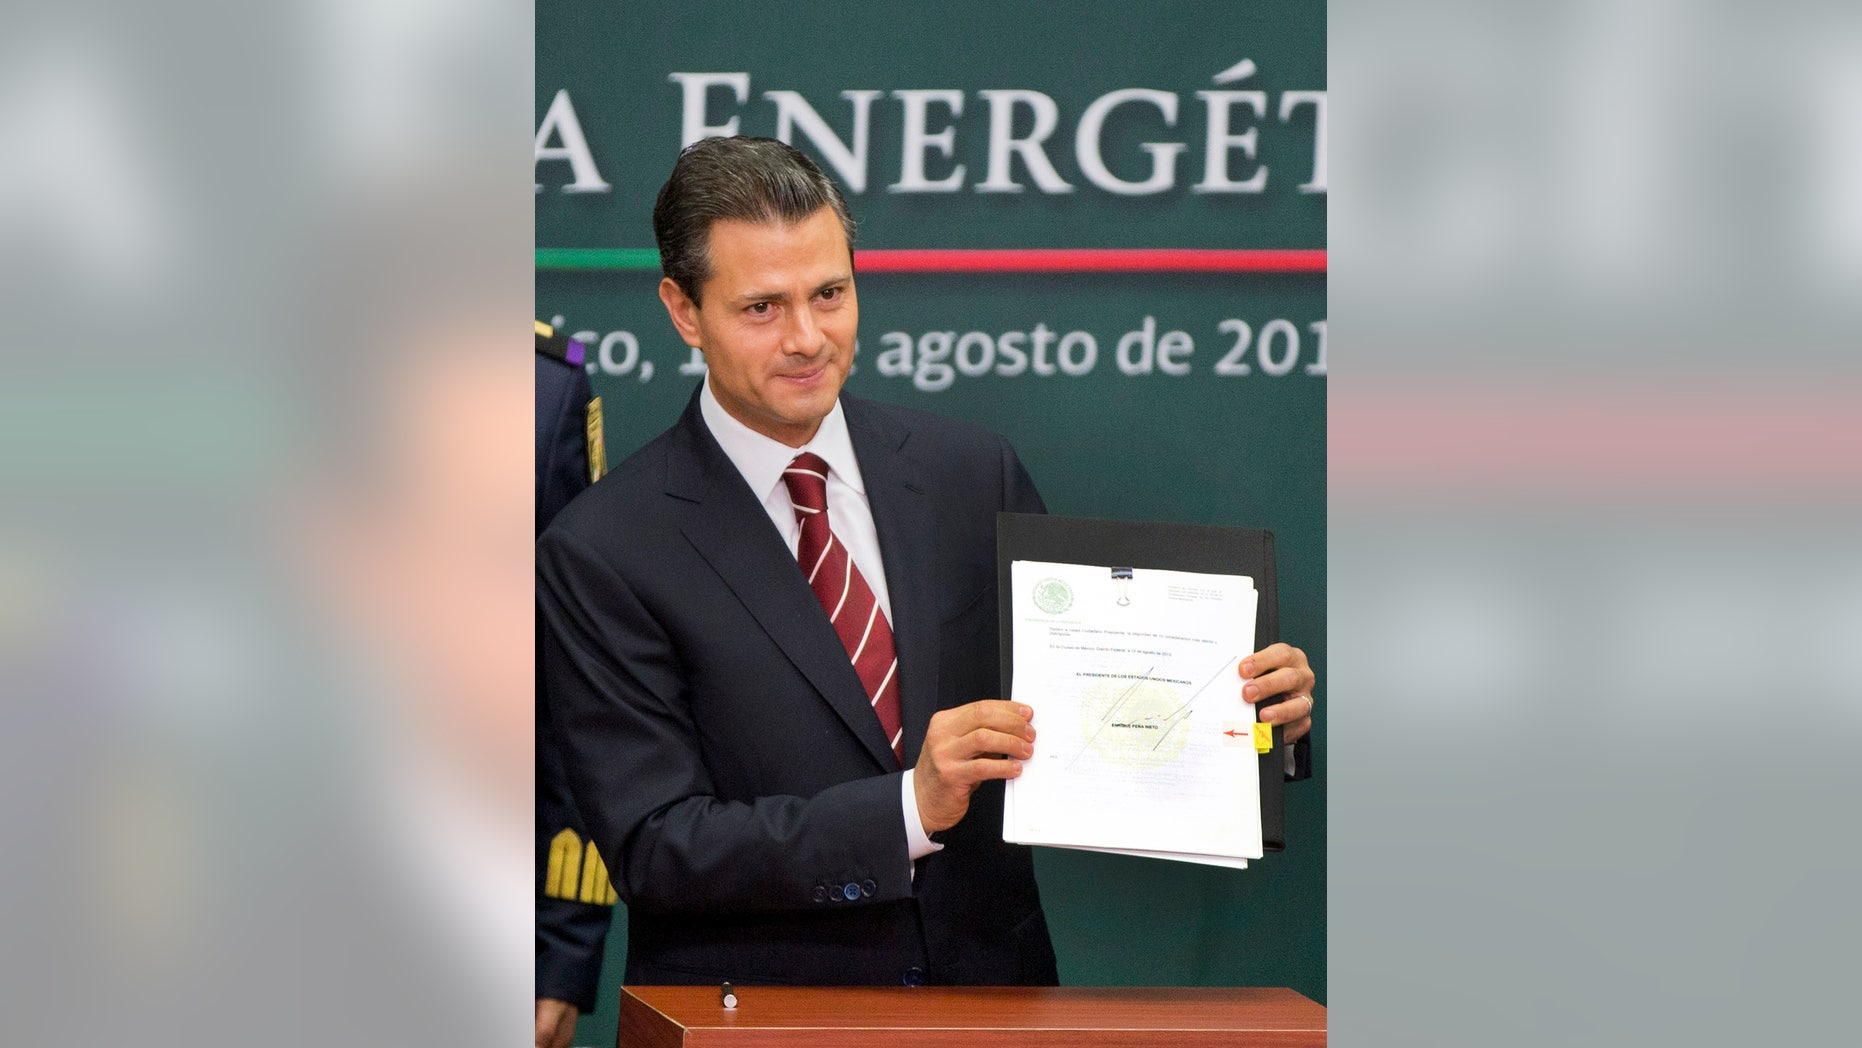 FILE - In this Aug. 12, 2013 file photo, Mexico's President Enrique Pena Nieto shows to the audience his proposal that would allow private firms to participate in the oil industry in Mexico City. The opening of Mexico's oil industry to private and foreign investment caps a remarkable series of legislative victories by President Pena Nieto, who istrying to re-engineer the country's most dysfunctional institutions. (AP Photo/Eduardo Verdugo, File)